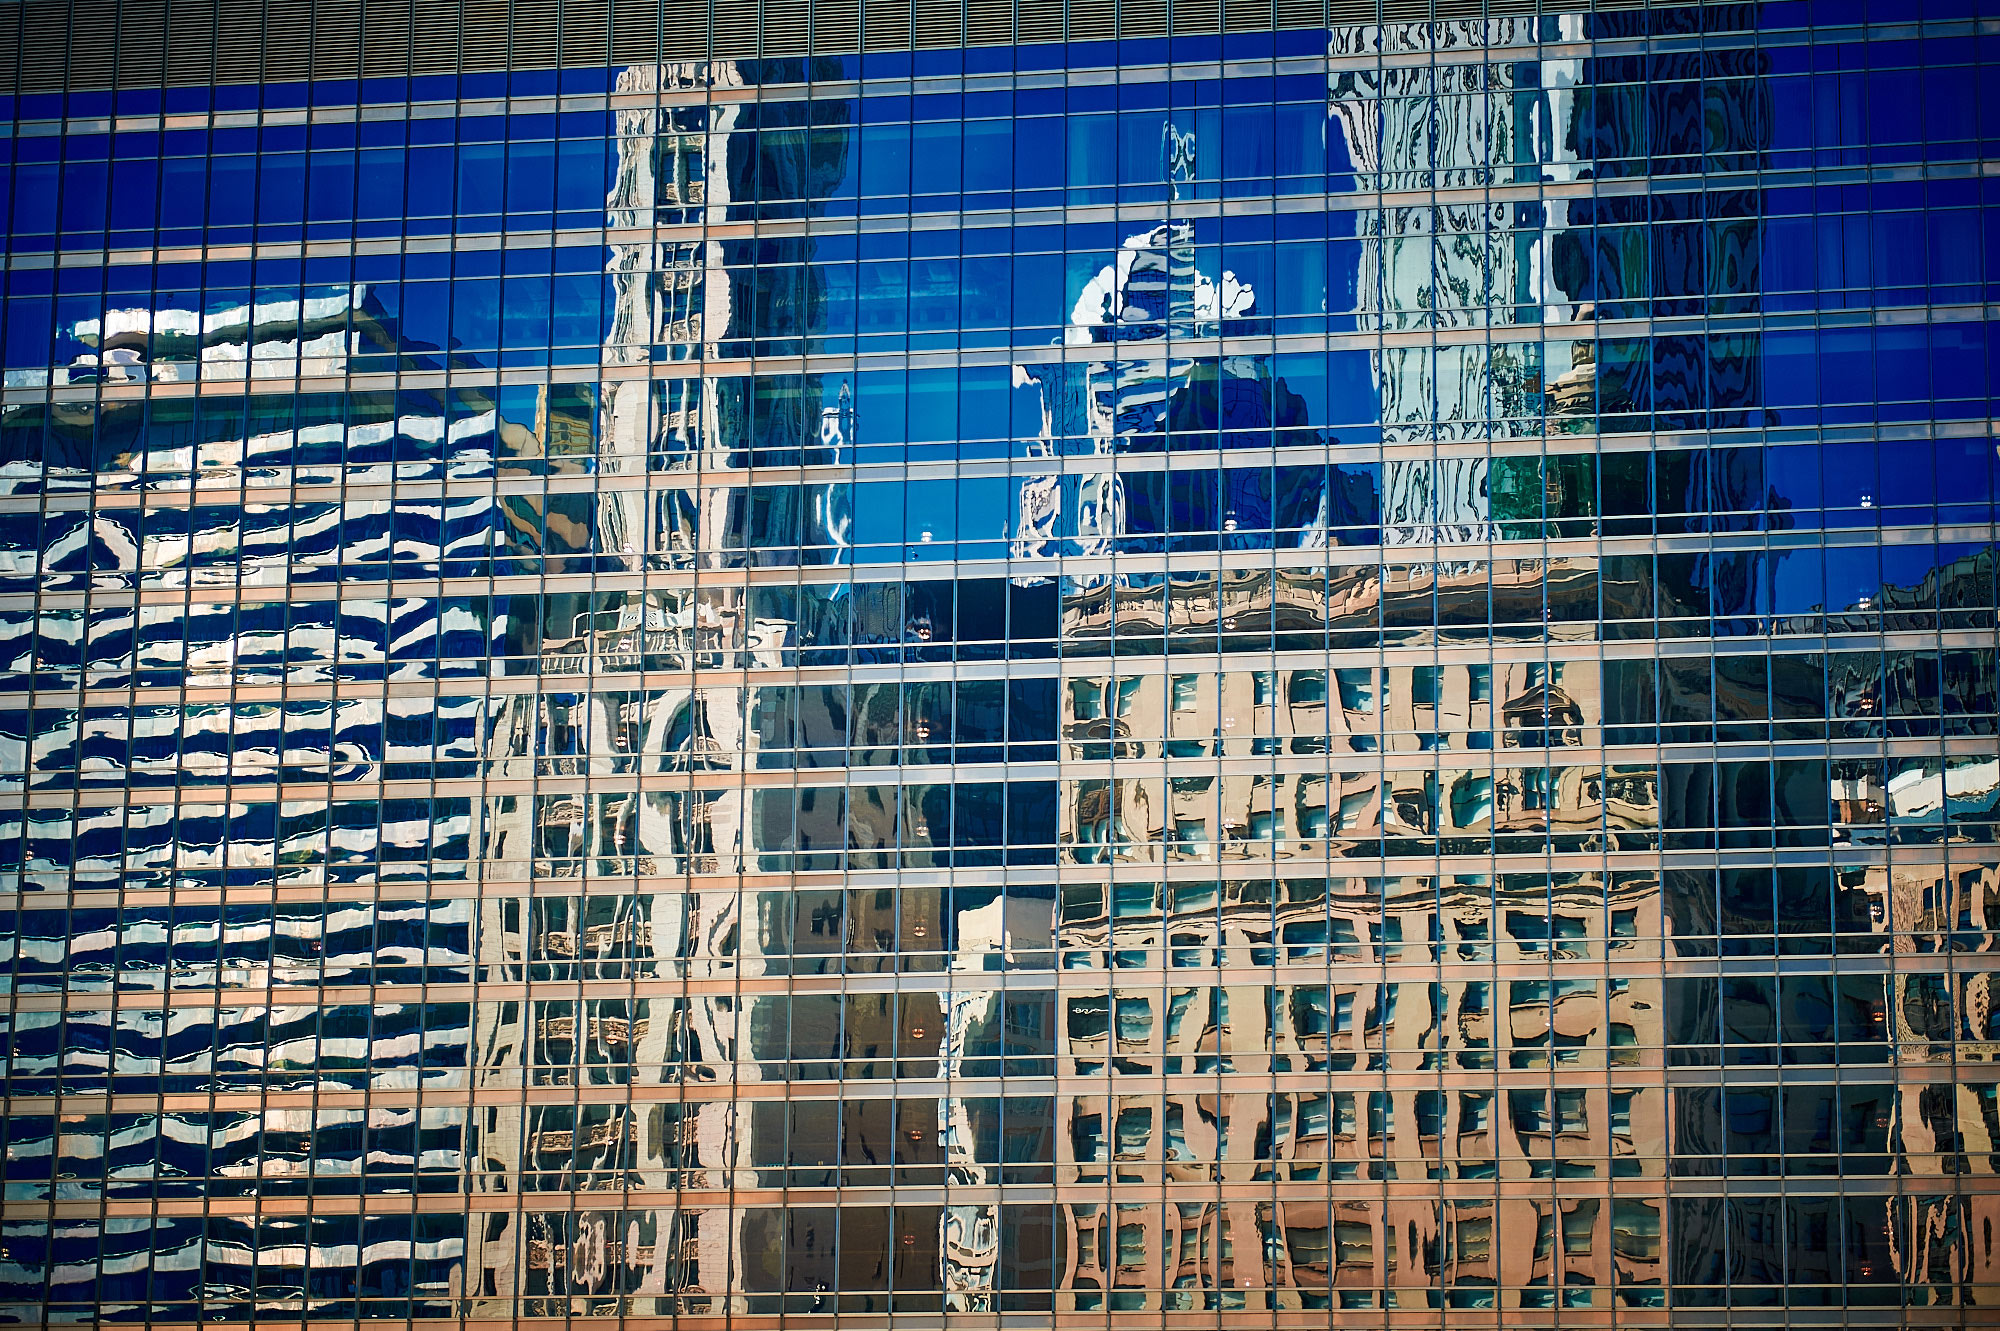 Reflection, Chicago, Illinois